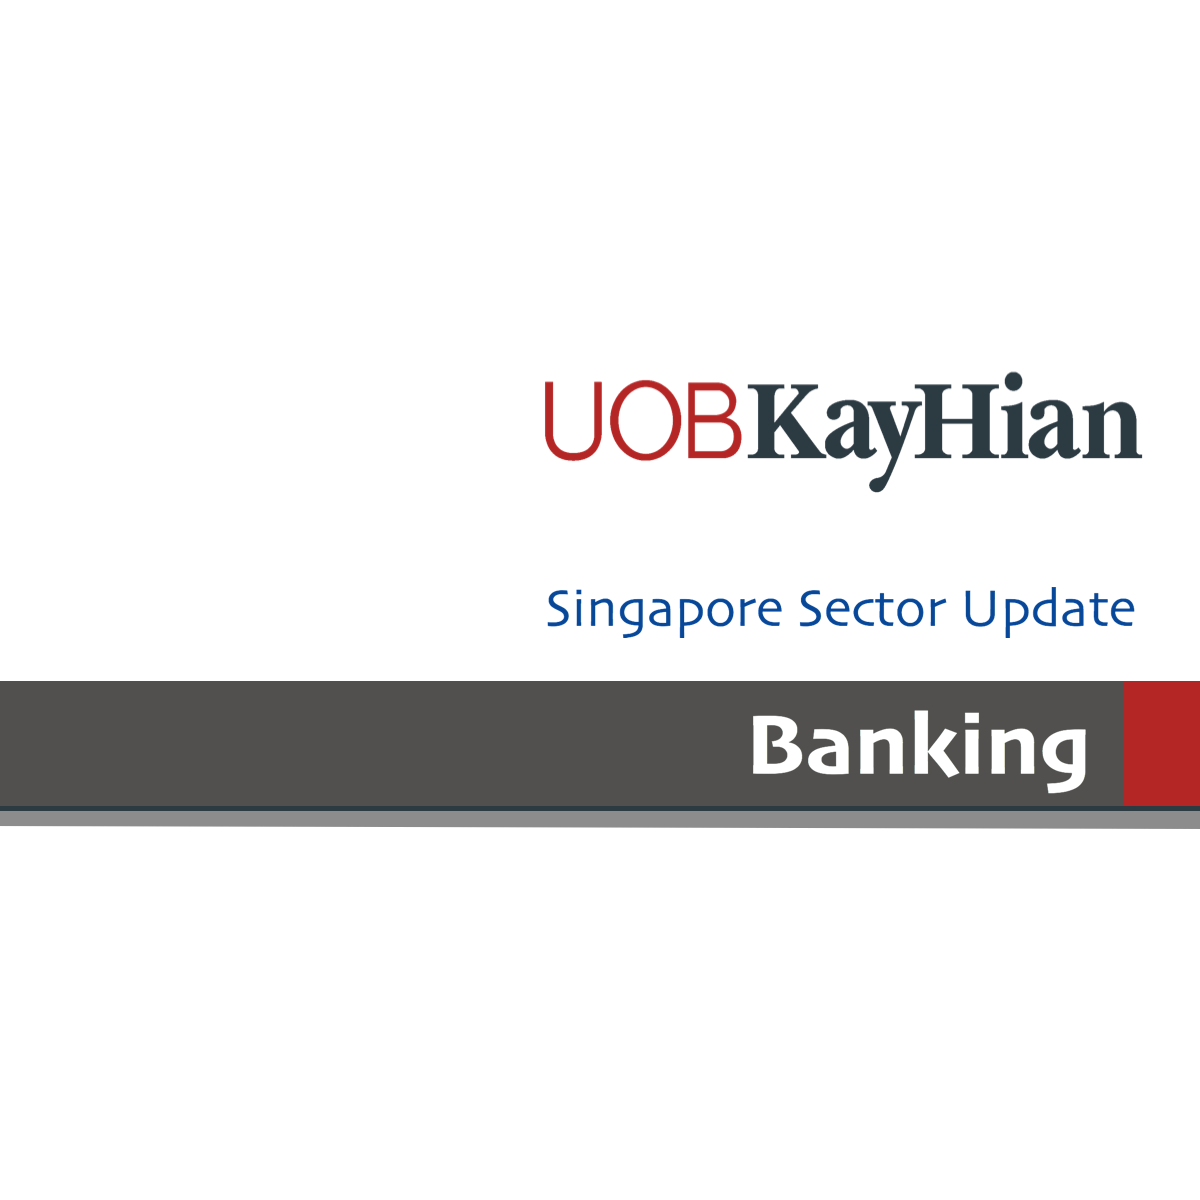 Banking – Singapore - UOB Kay Hian 2017-03-14: Unexpected Boost From Real Estate